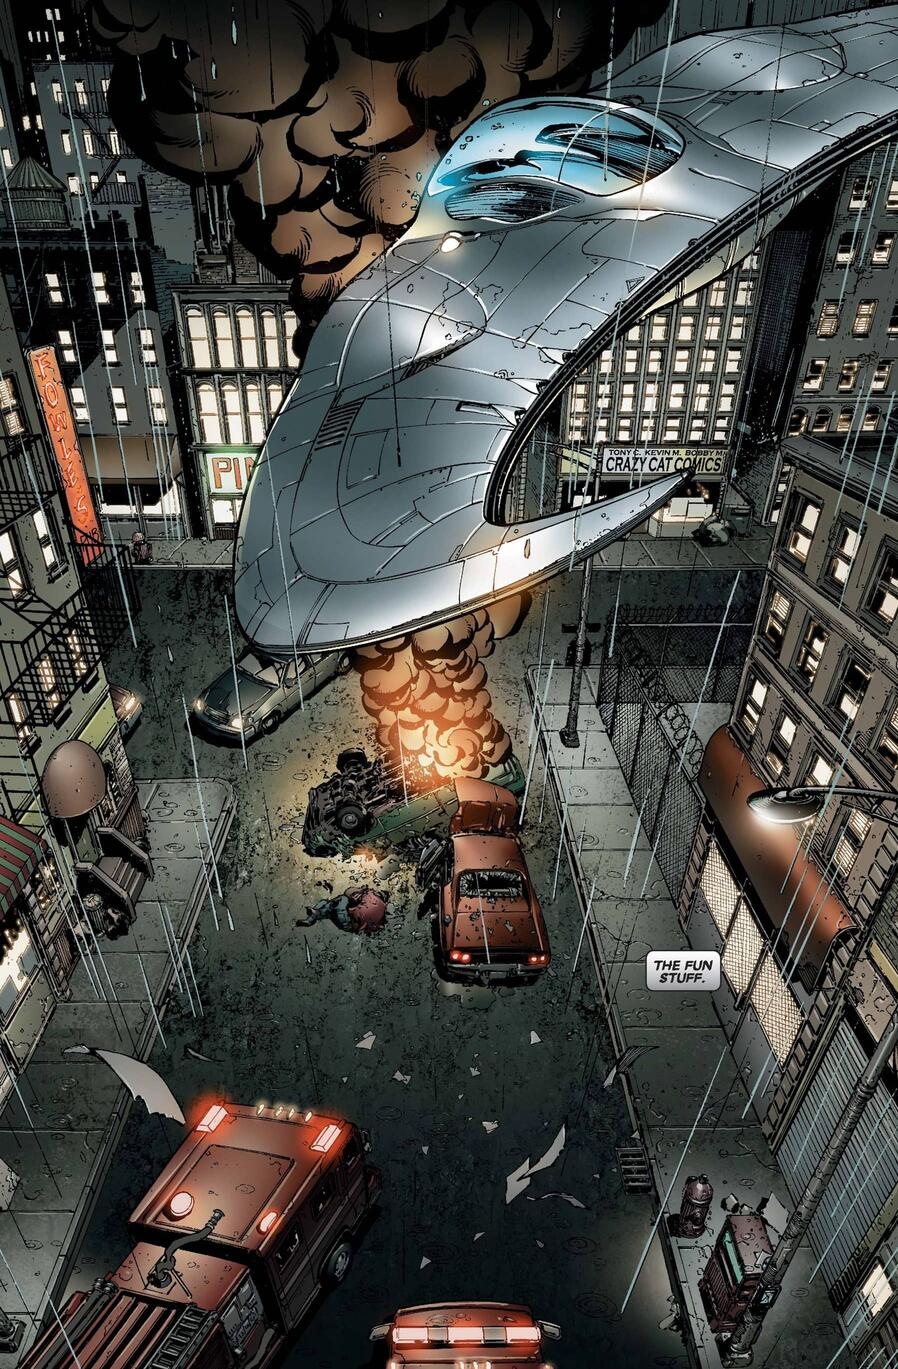 The Mooncopter in MOON KNIGHT (2006) #1.